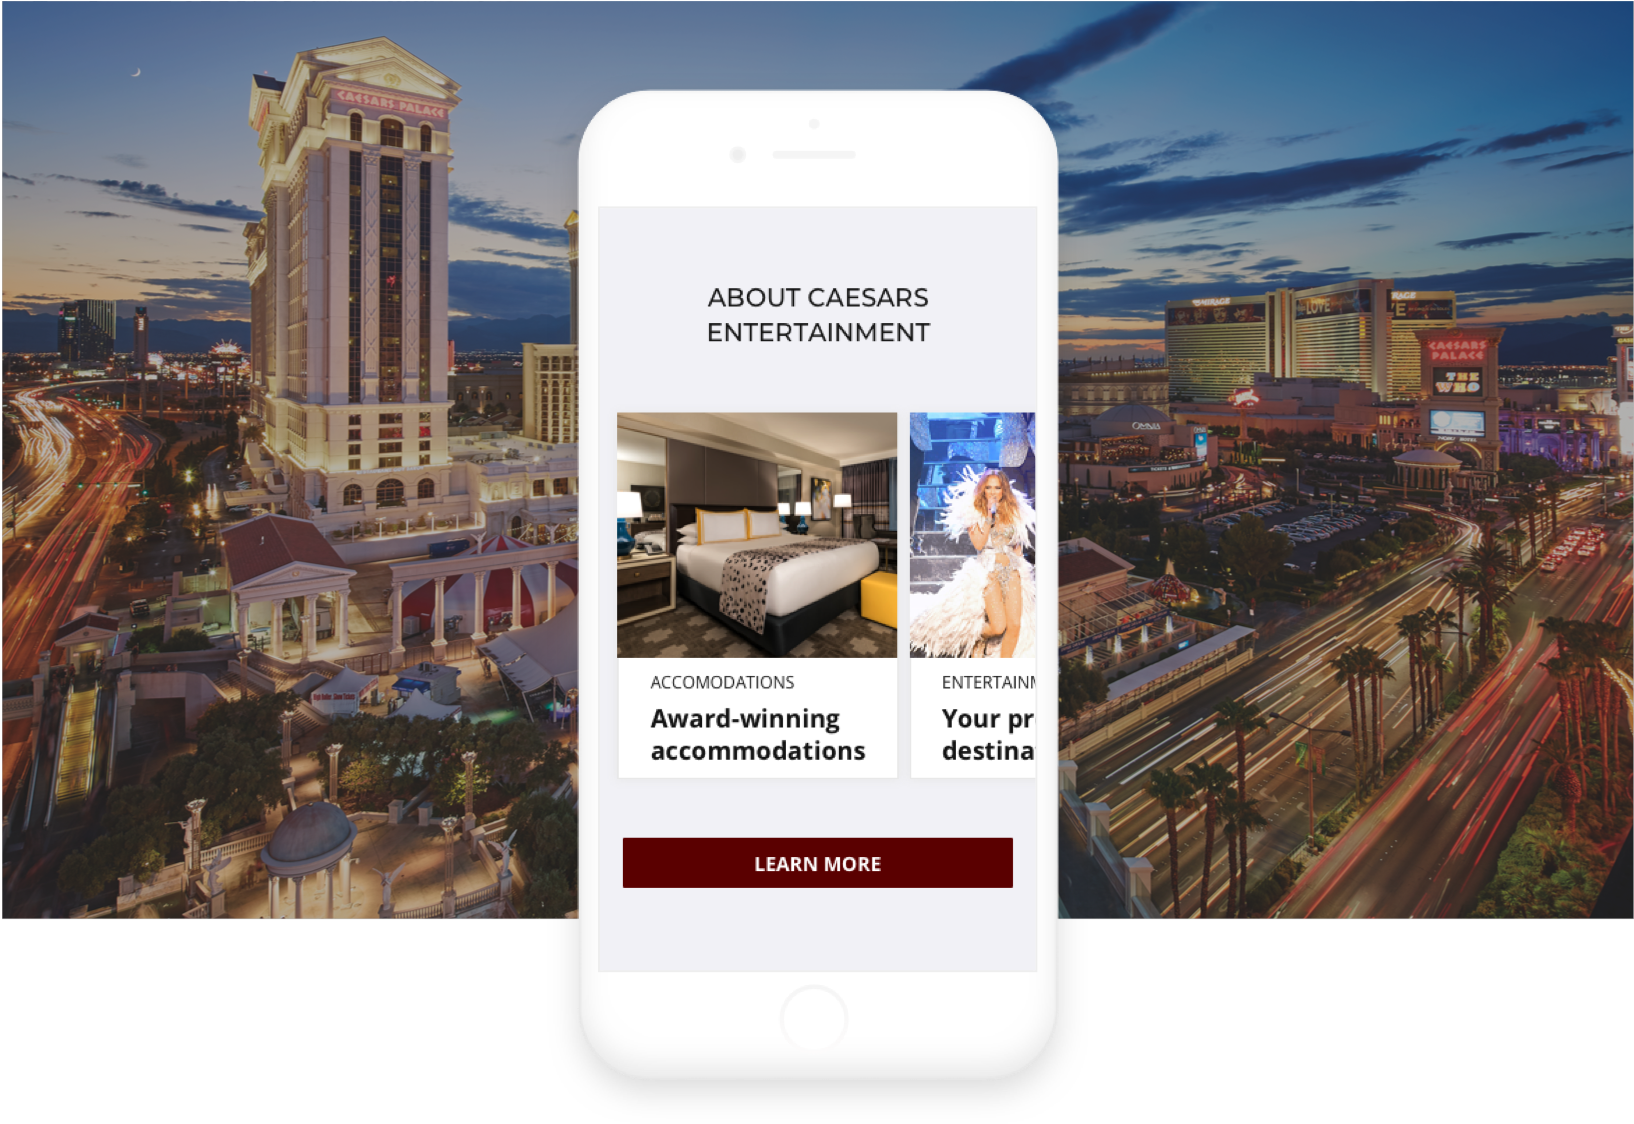 caesars site on iphone mock-up with backdrop of the vegas strip and caesars palace